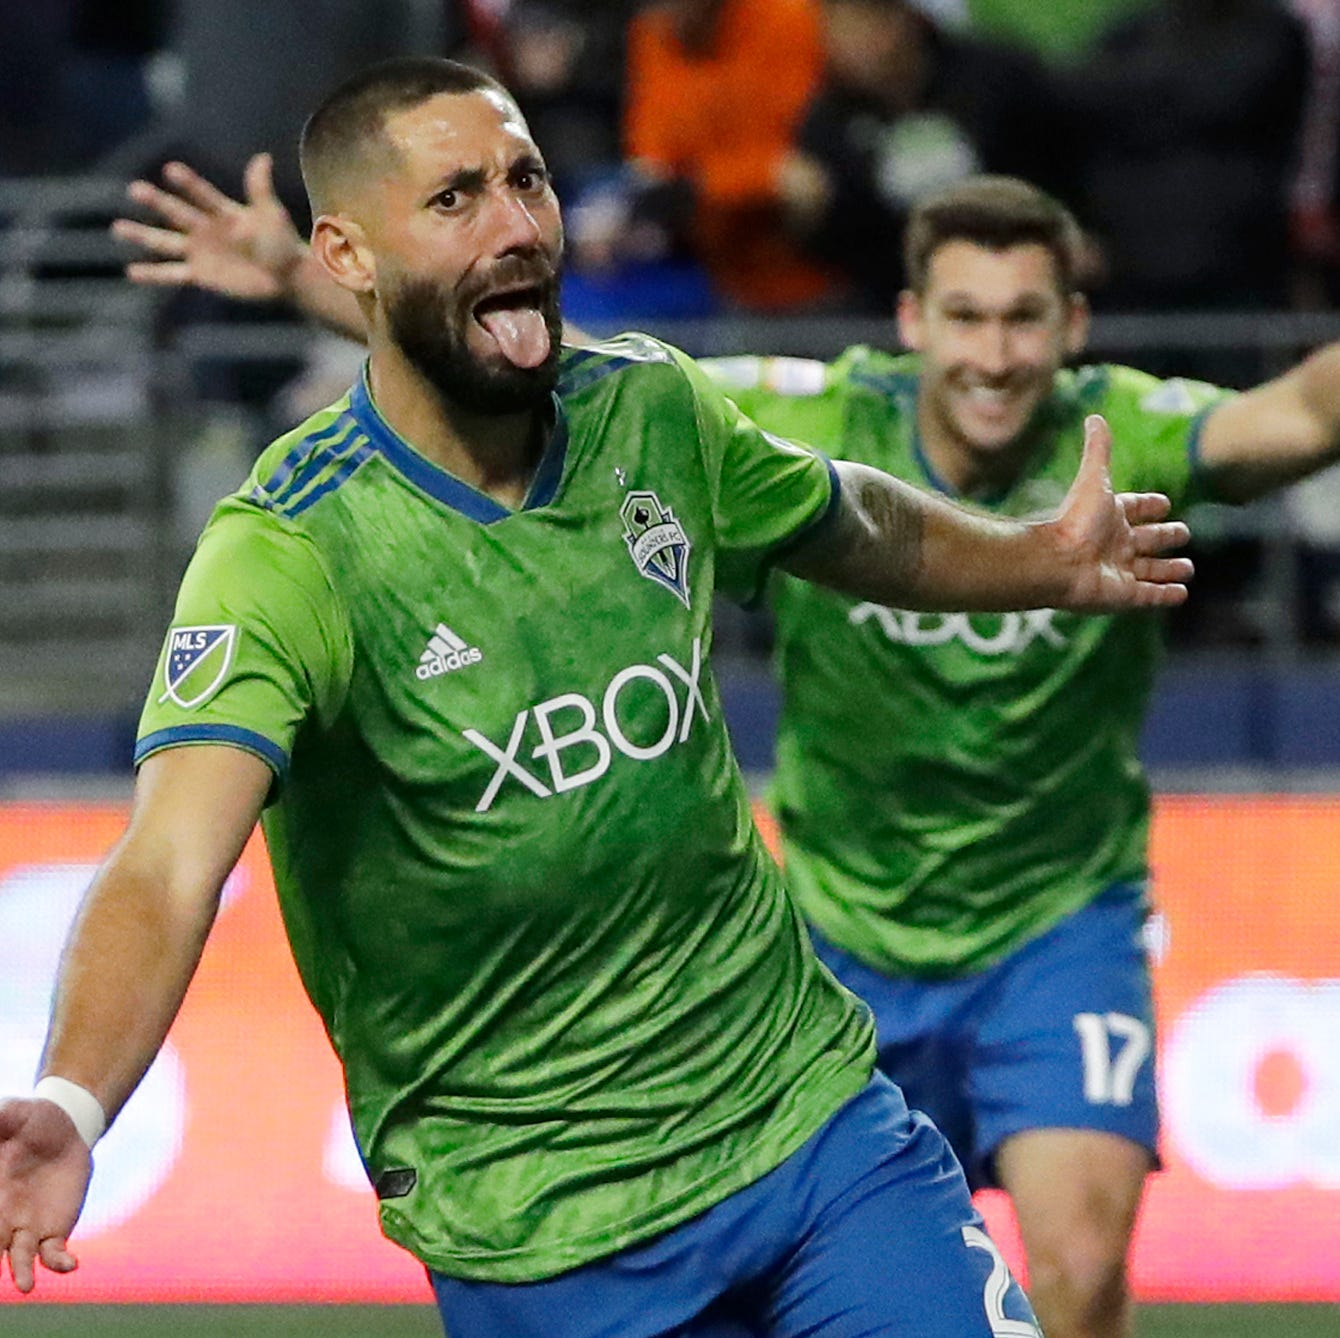 Seattle Sounders' Clint Dempsey announces immediate retirement